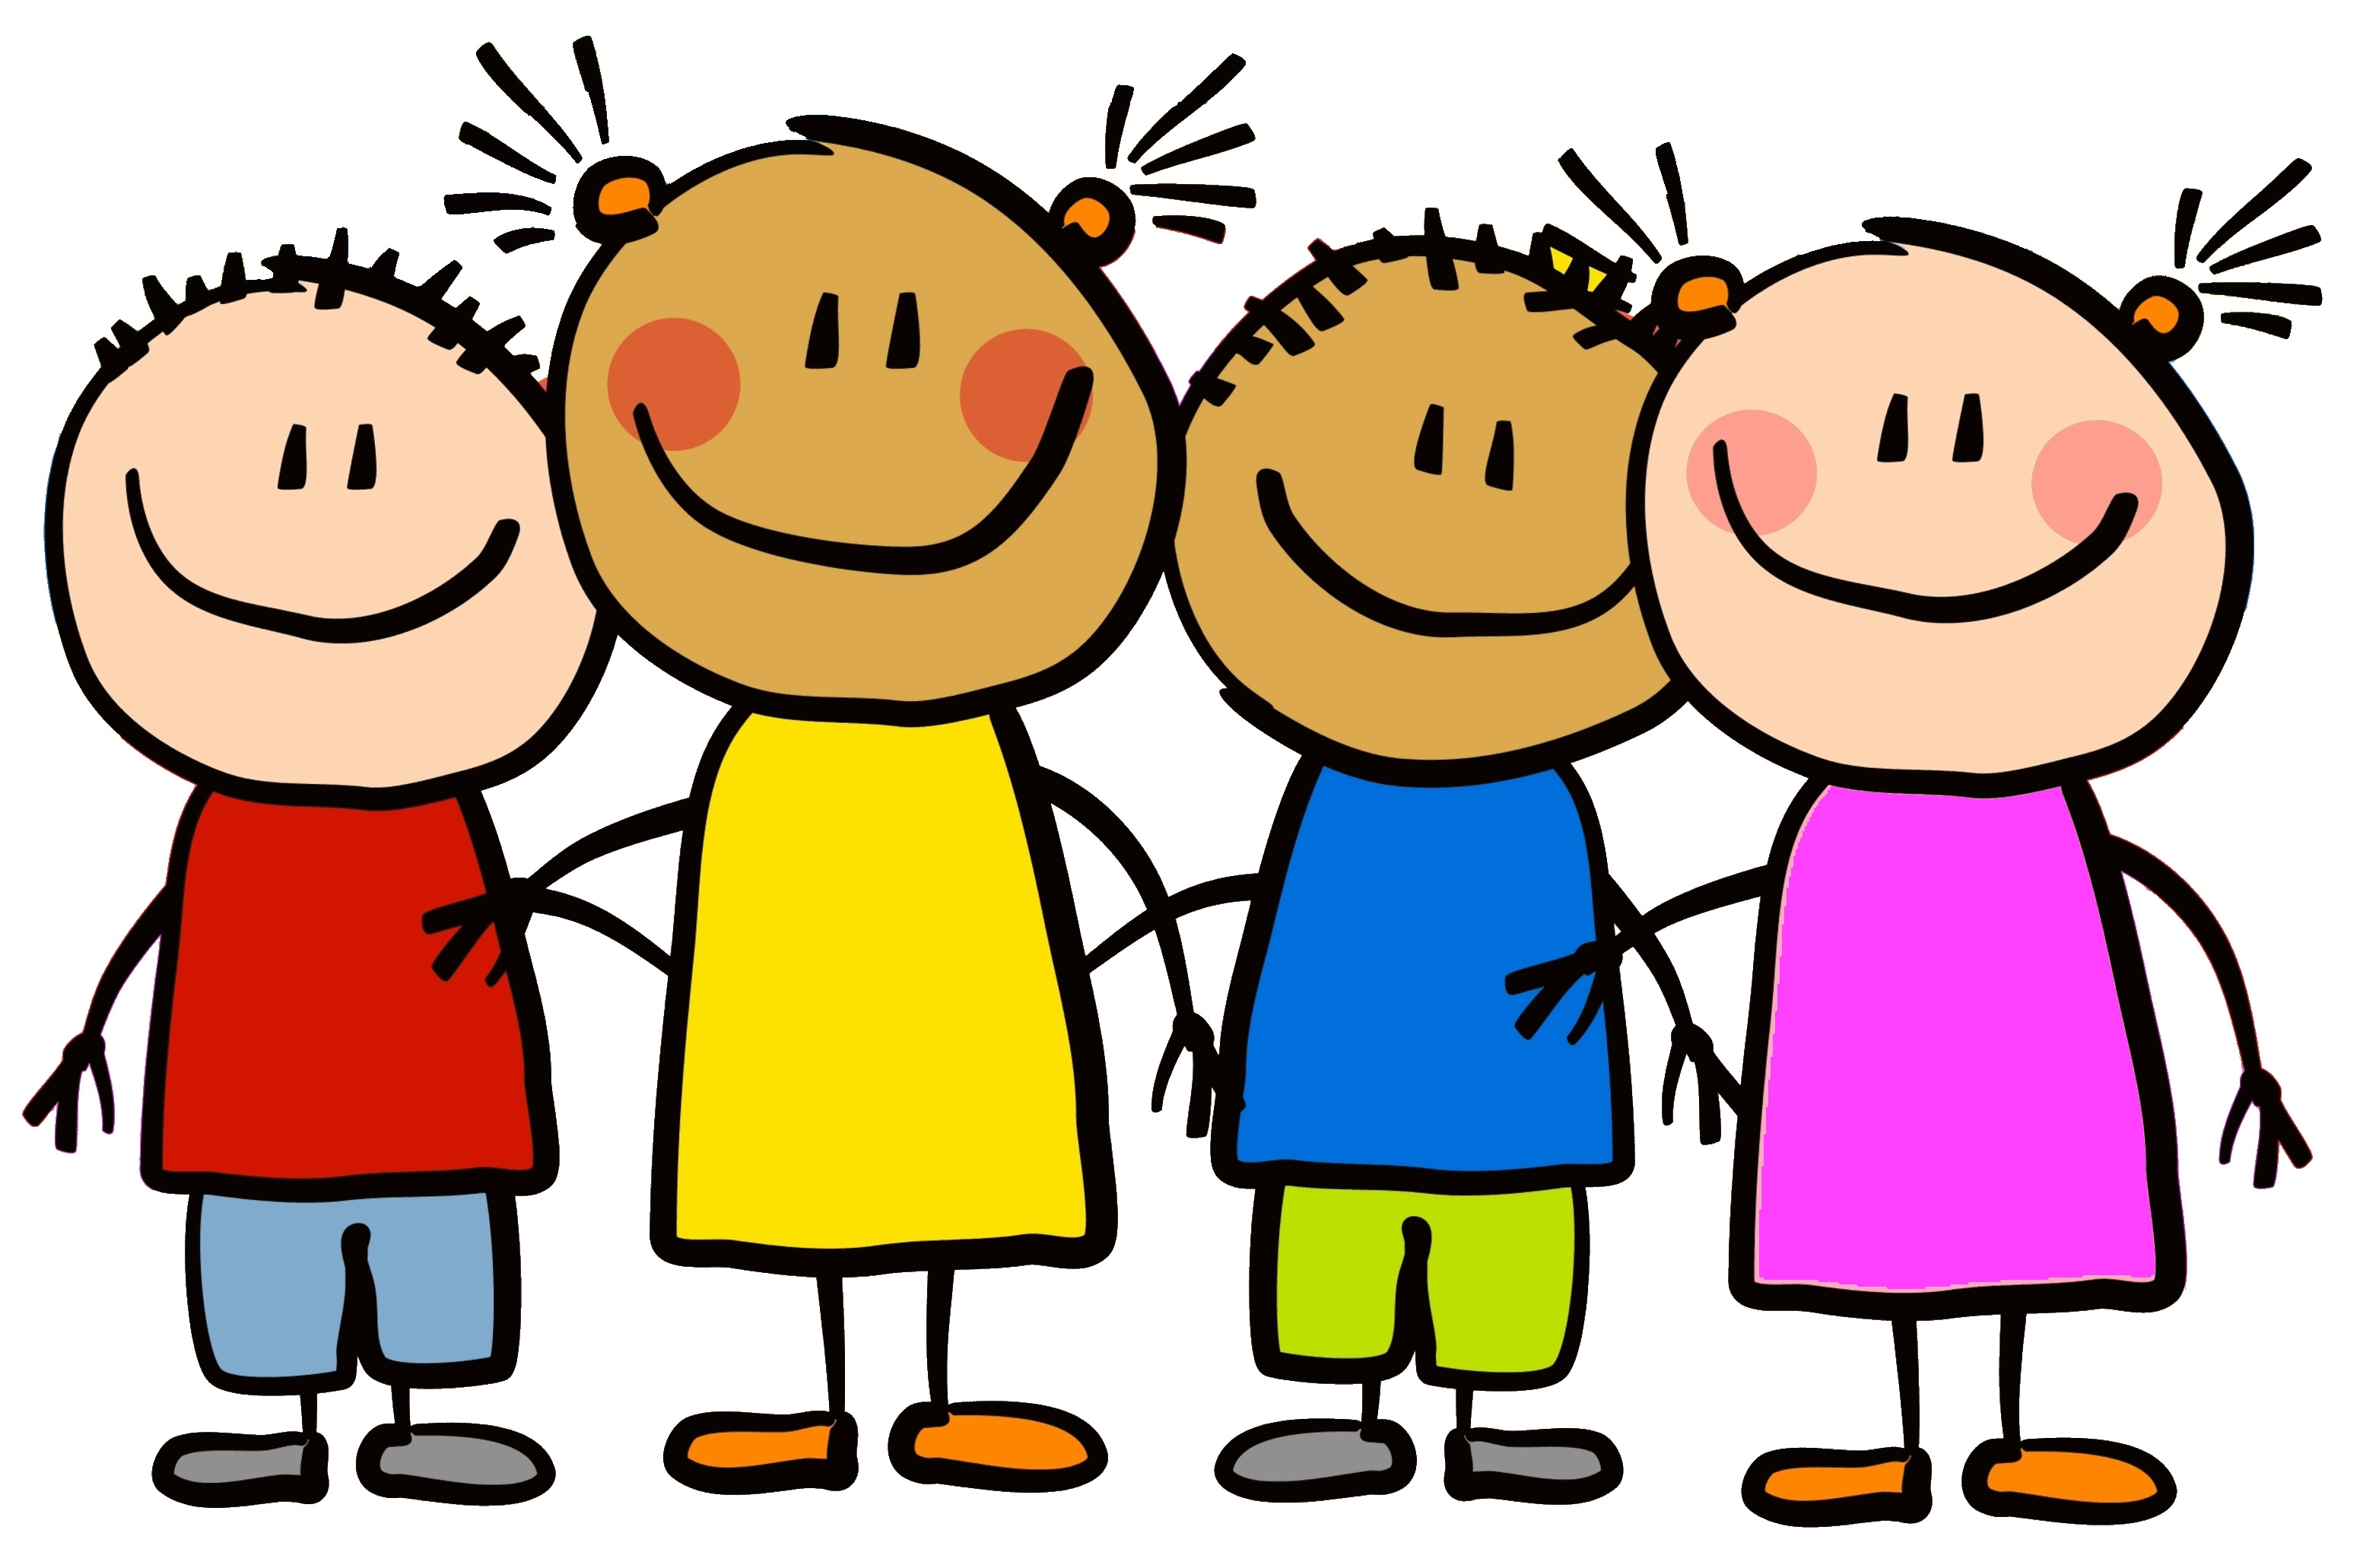 Kind clipart happy kid. Kids at getdrawings com